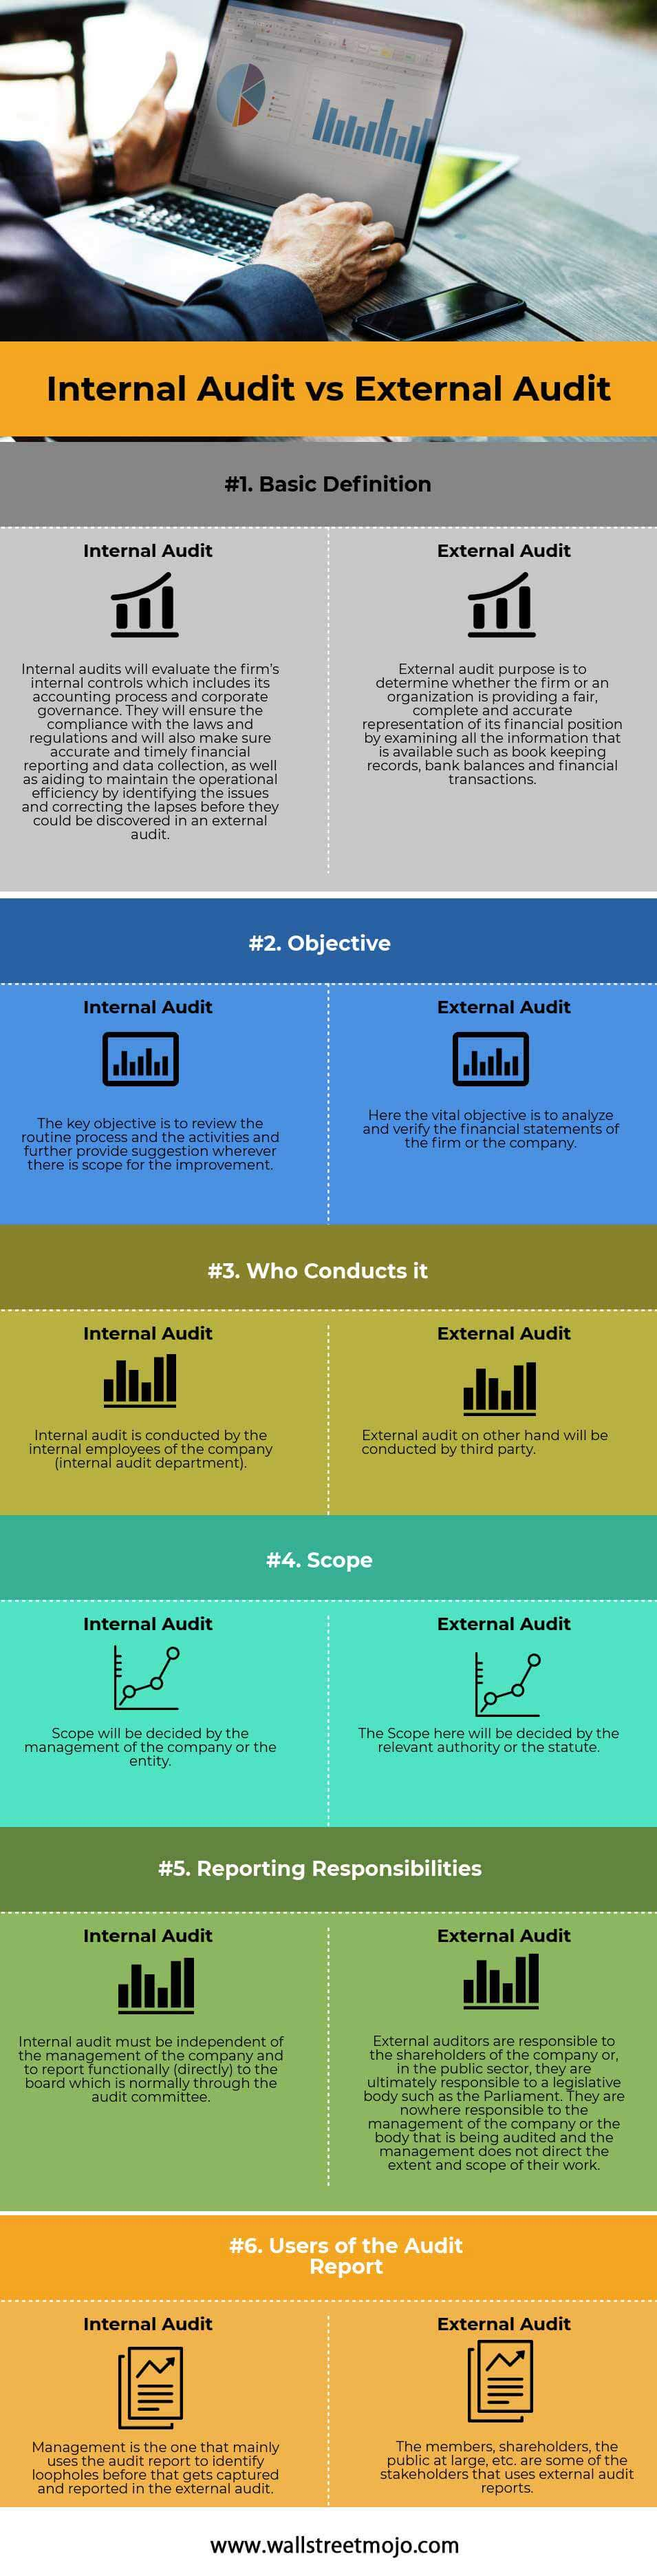 Internal Audit vs External Audit | Top 6 Differences (with